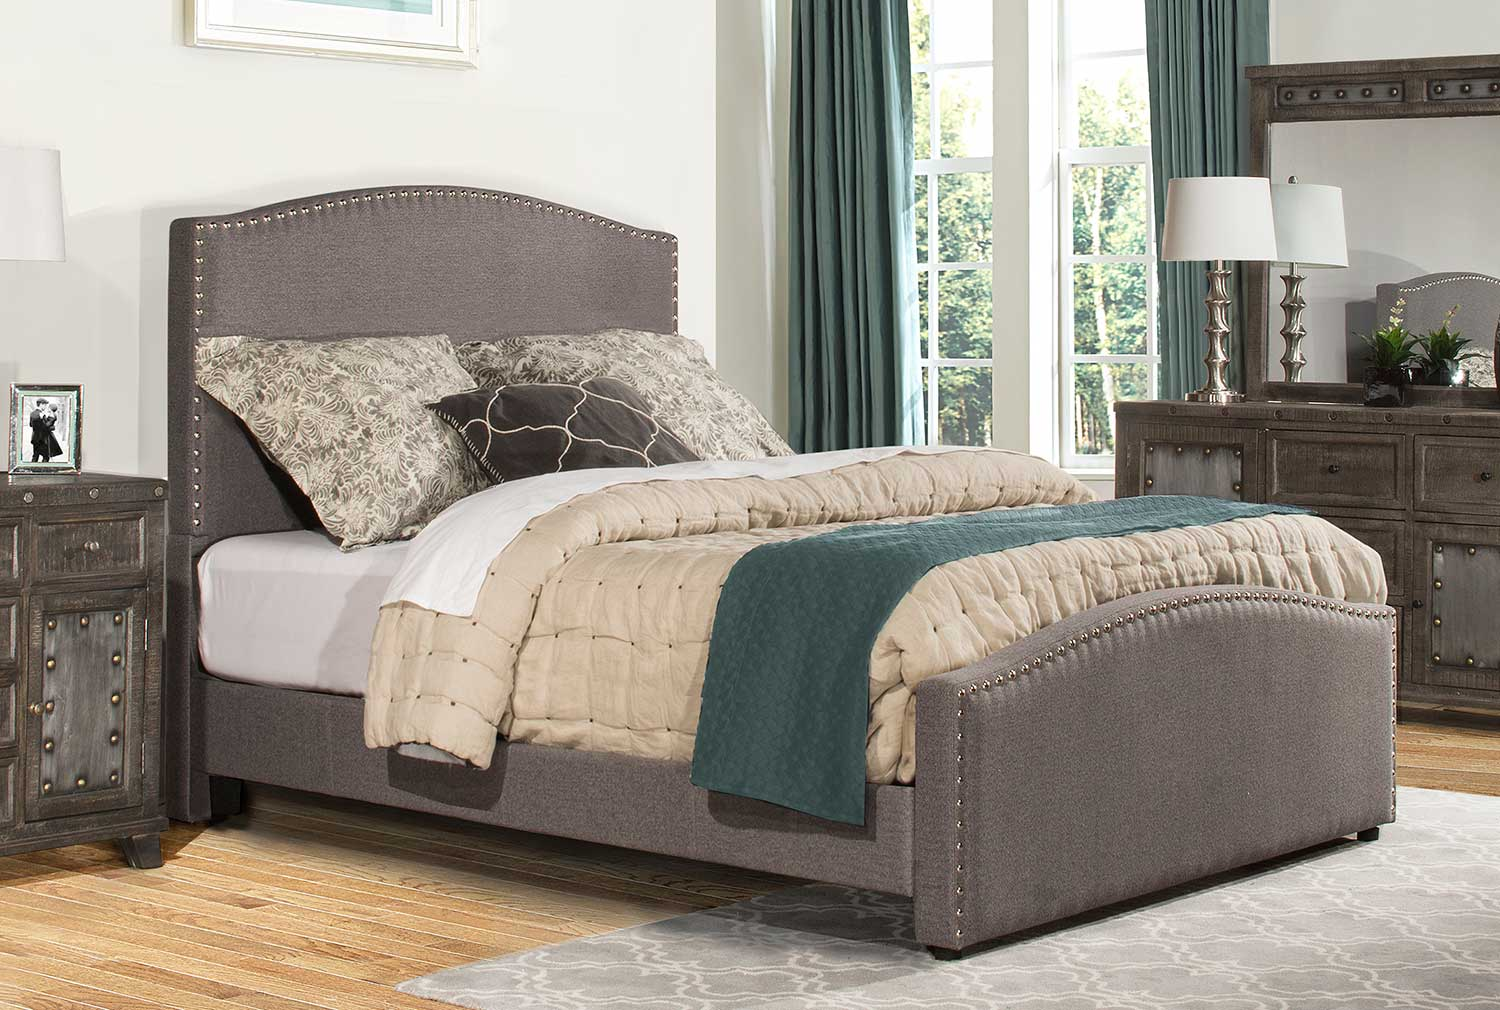 Hillsdale Kerstein Bed - Orly Gray Fabric